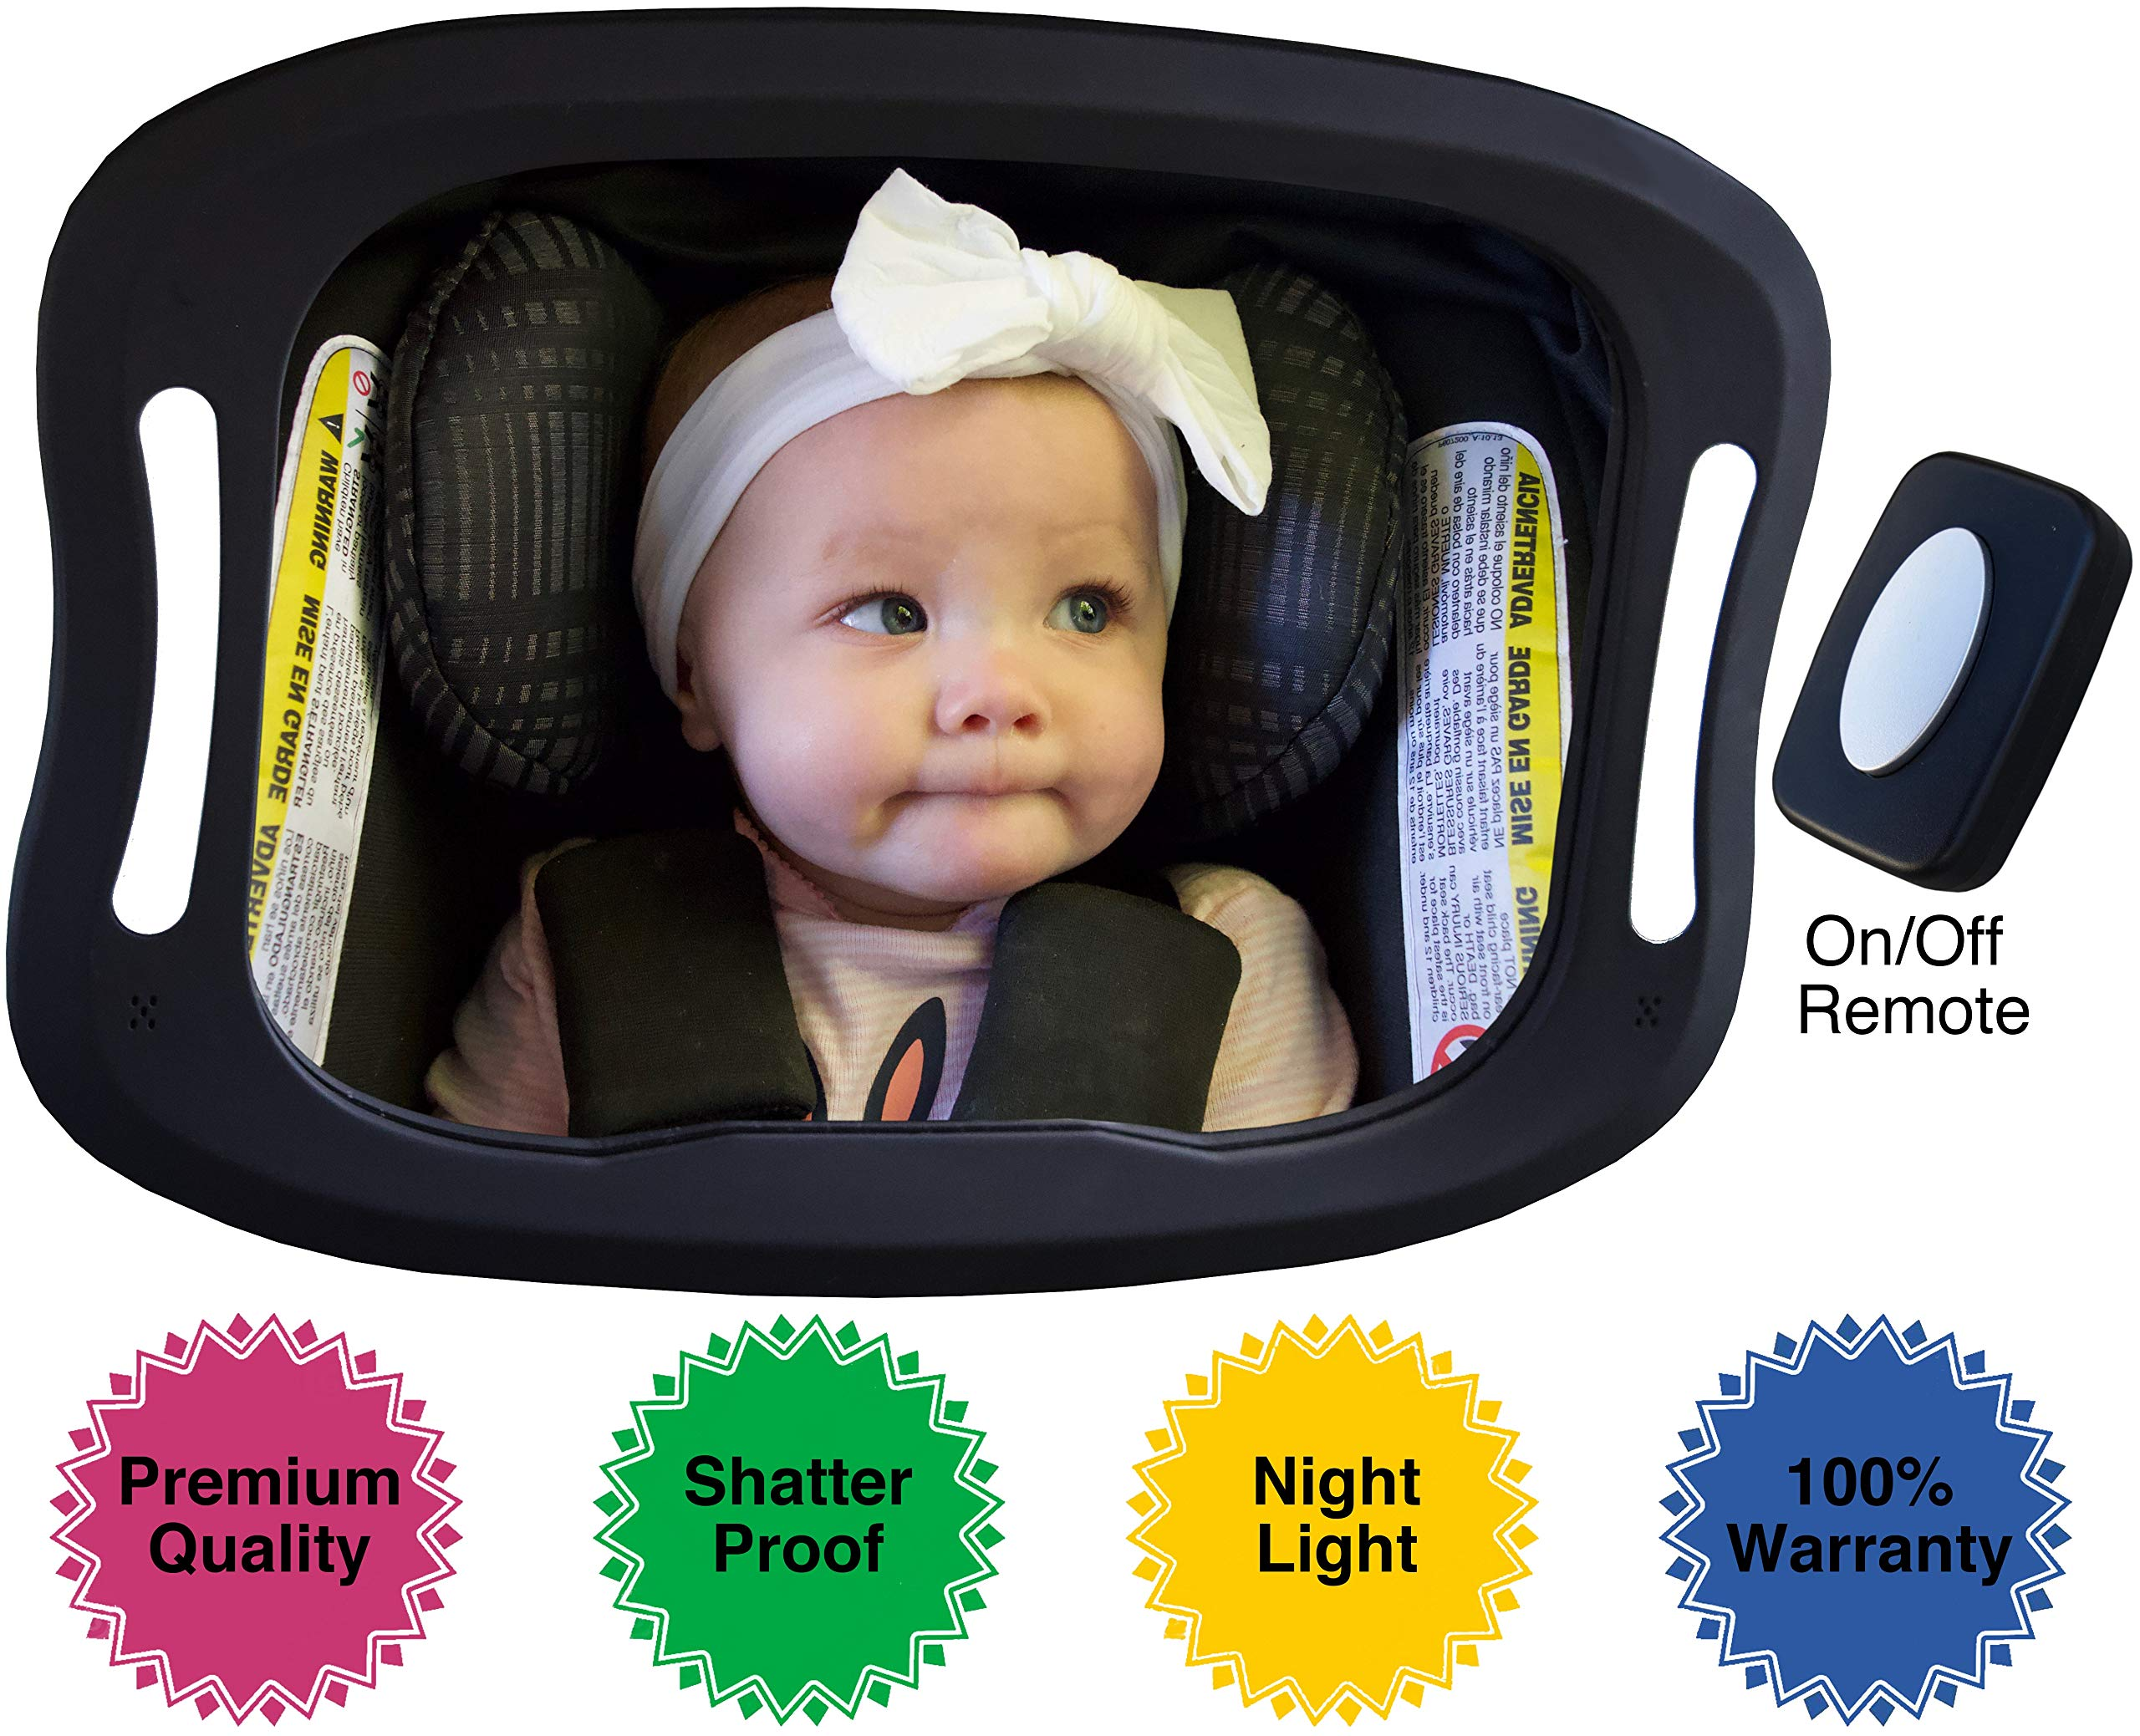 Baby Car Mirror with Light (for Driving at Night) & FOB Control | Backseat Baby Mirror by Baby Watch | Shatter-Proof, Fully Assembled by BABY WATCH